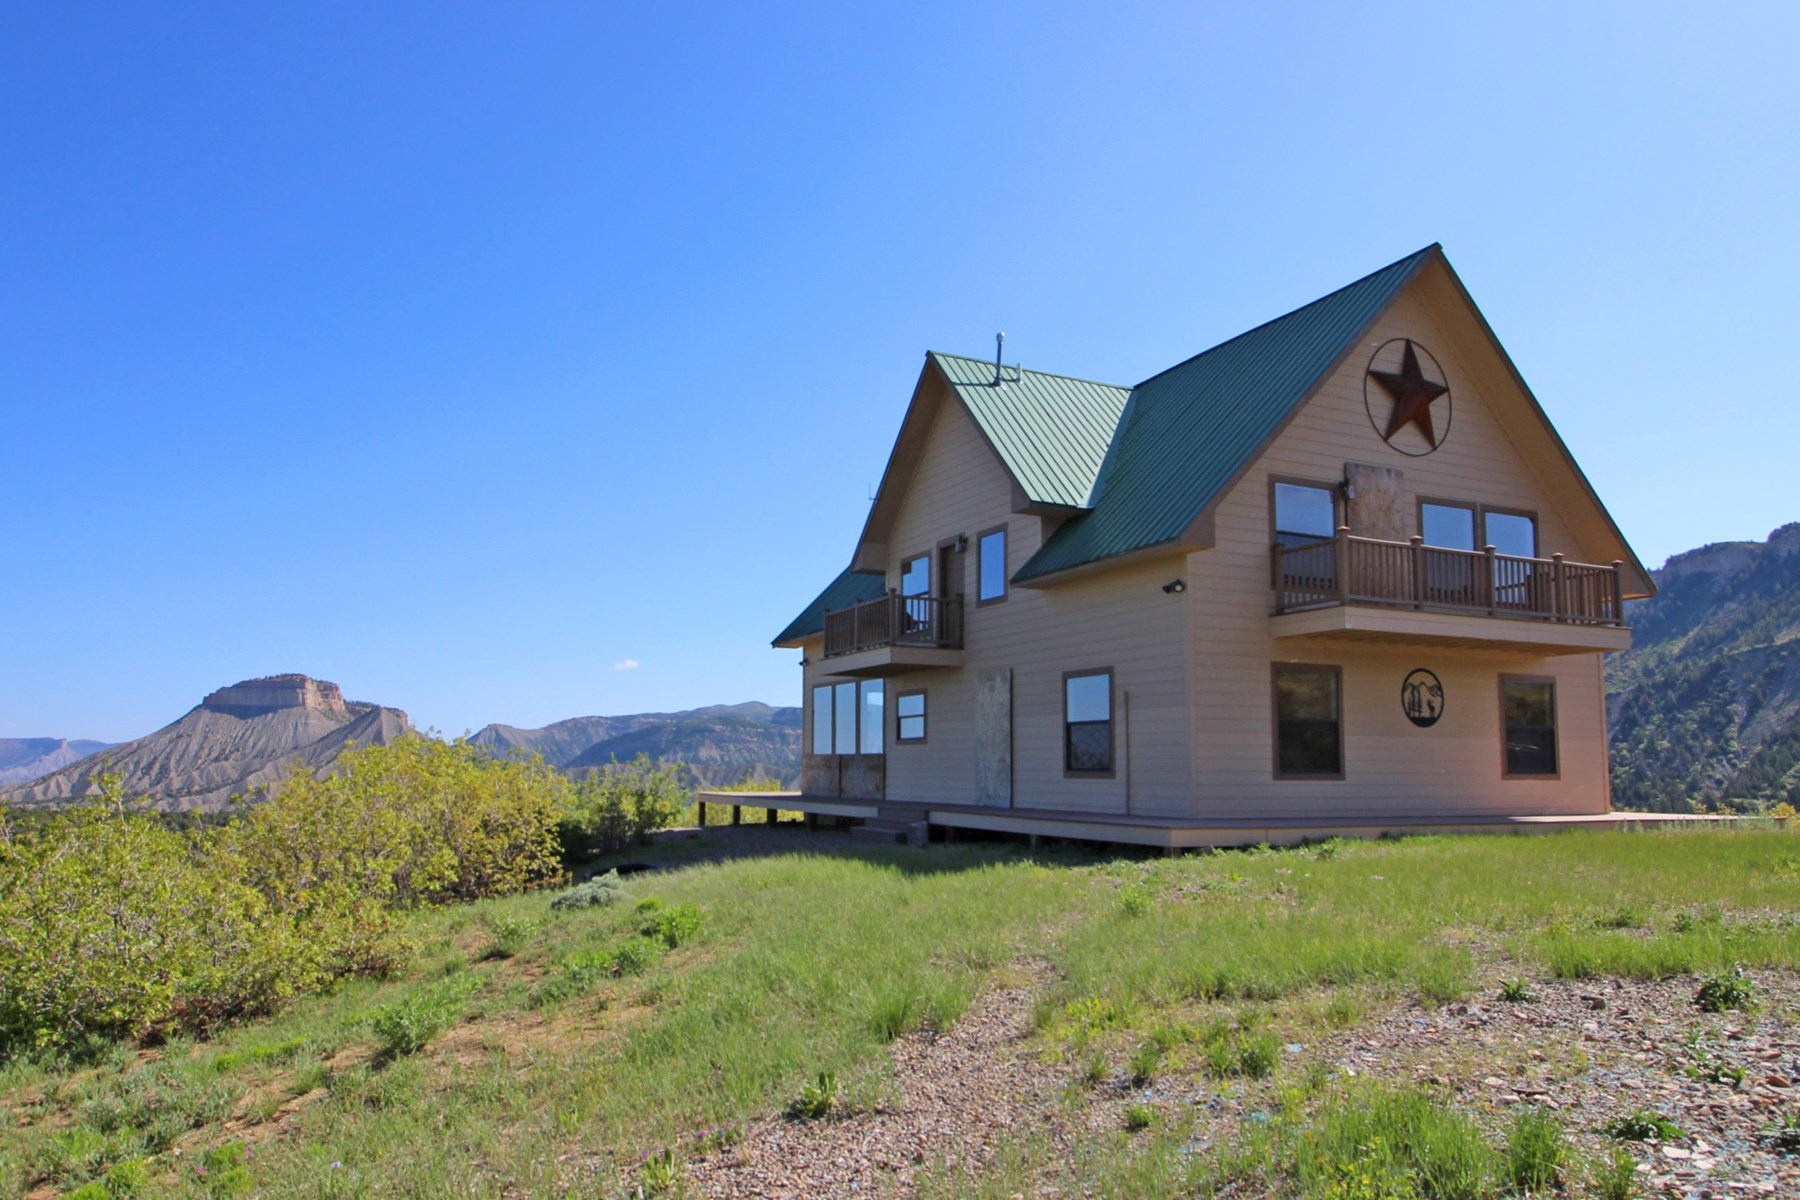 Incredible southwest Colorado home and home site!